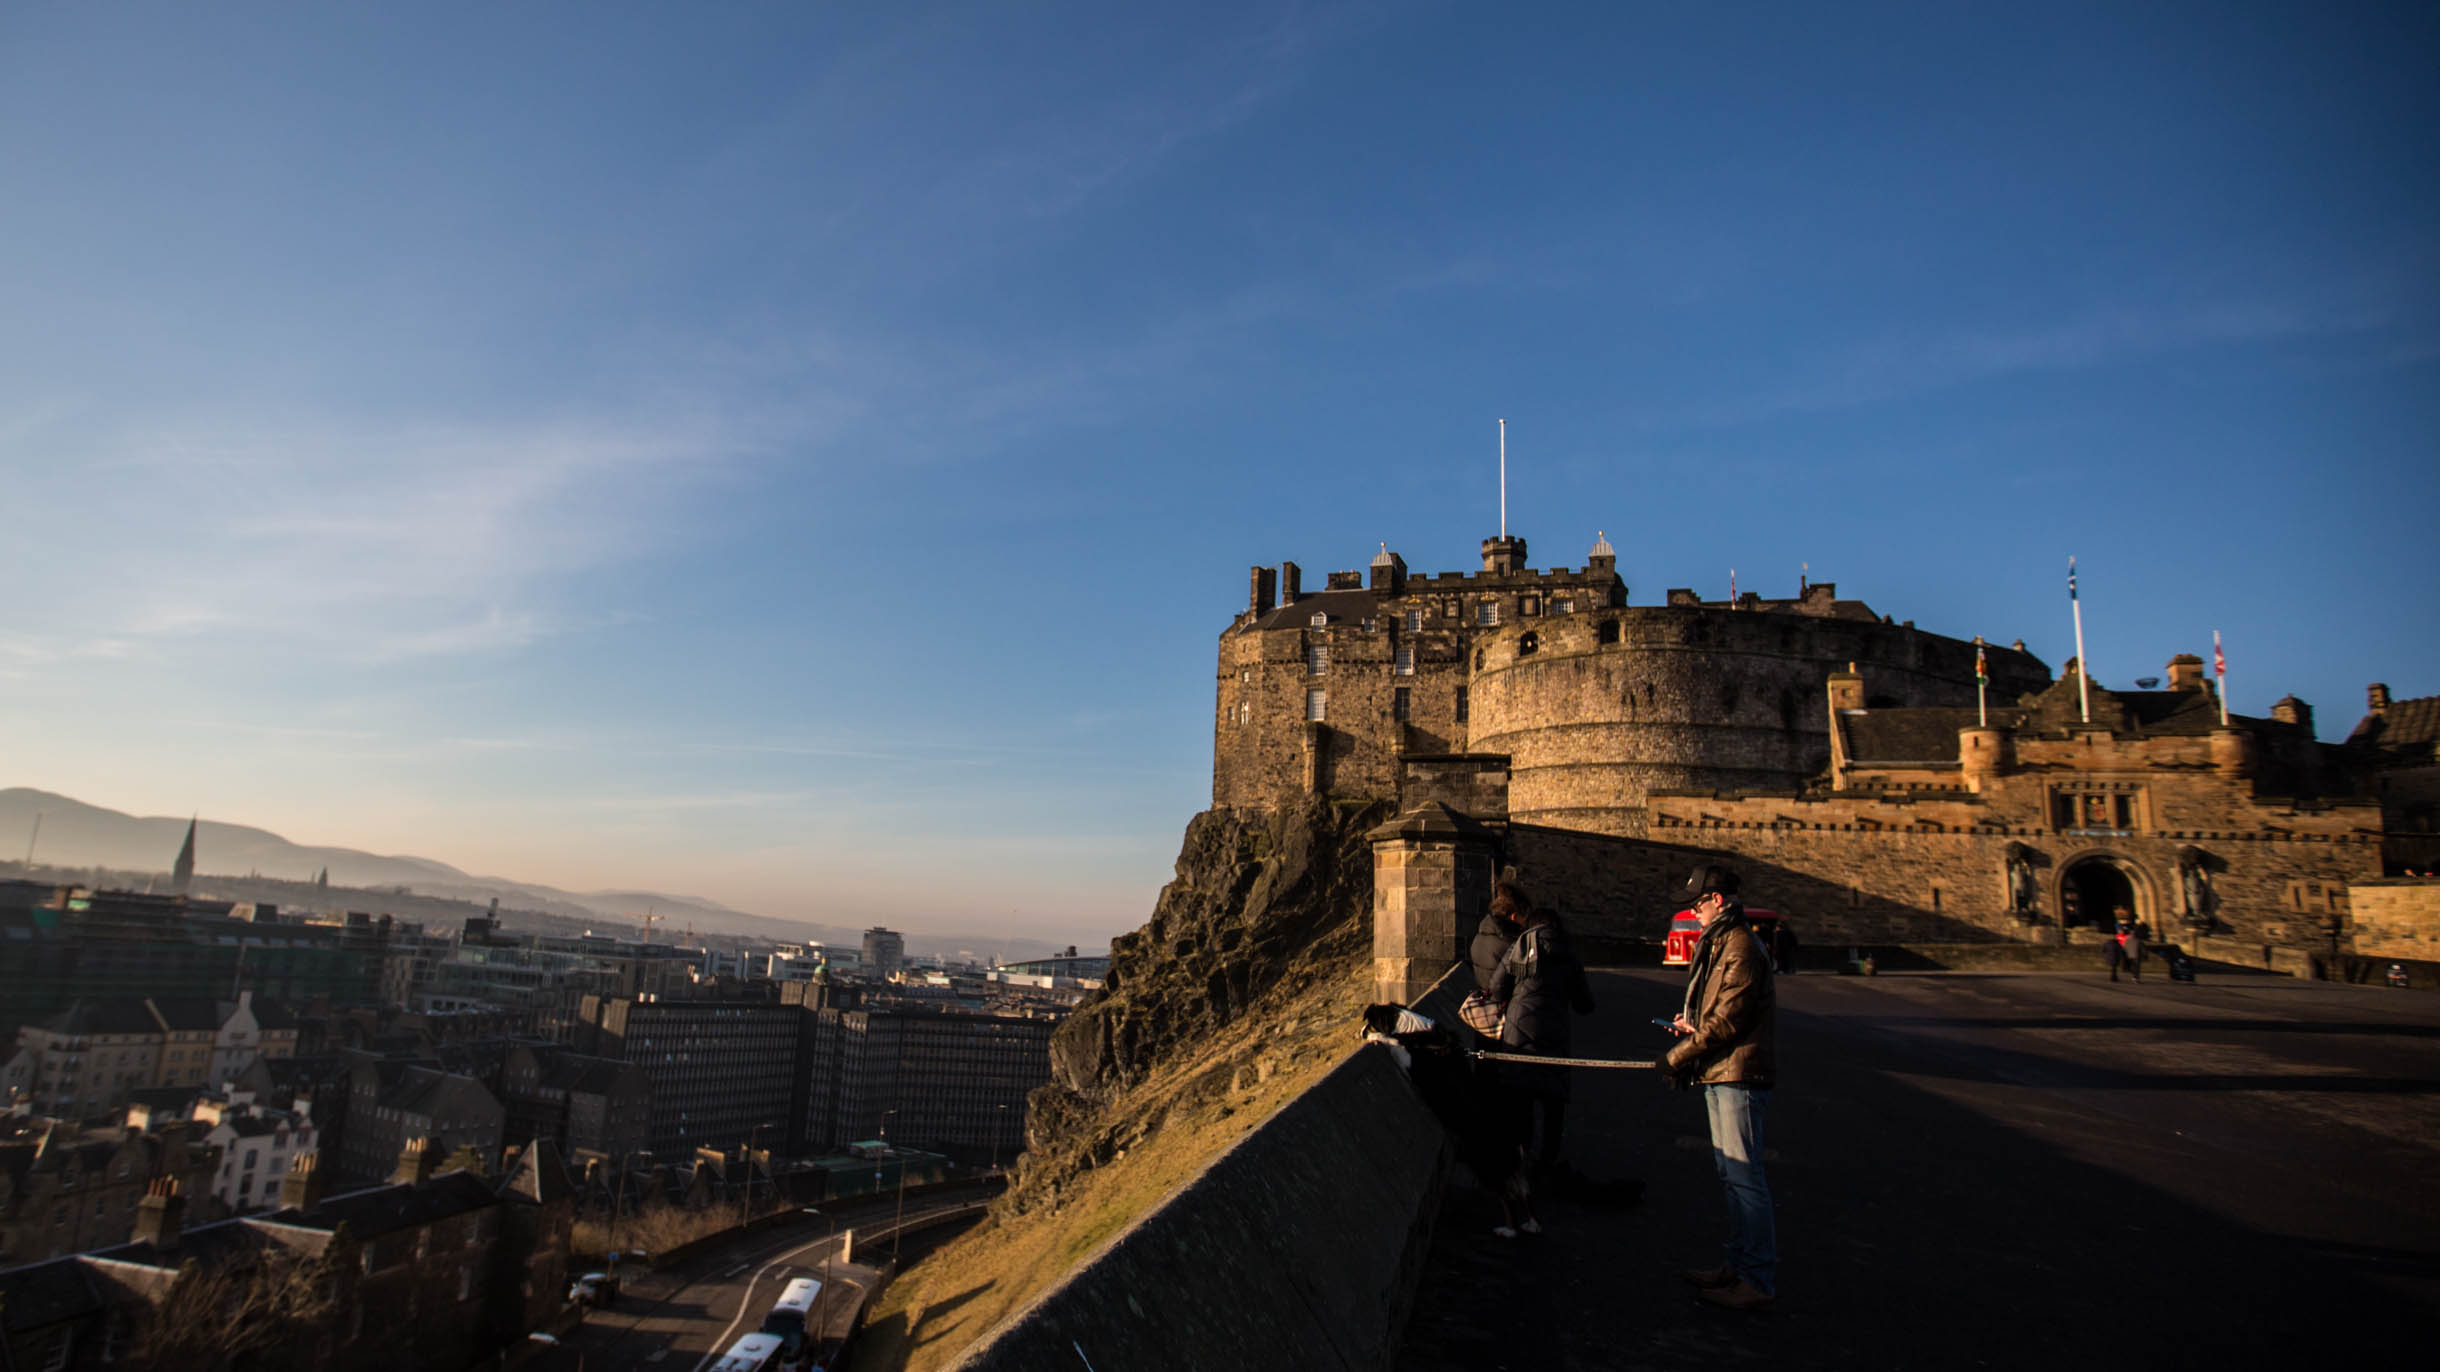 Picture Taken While Exploring Edinburgh - edinburgh castle at sunrise